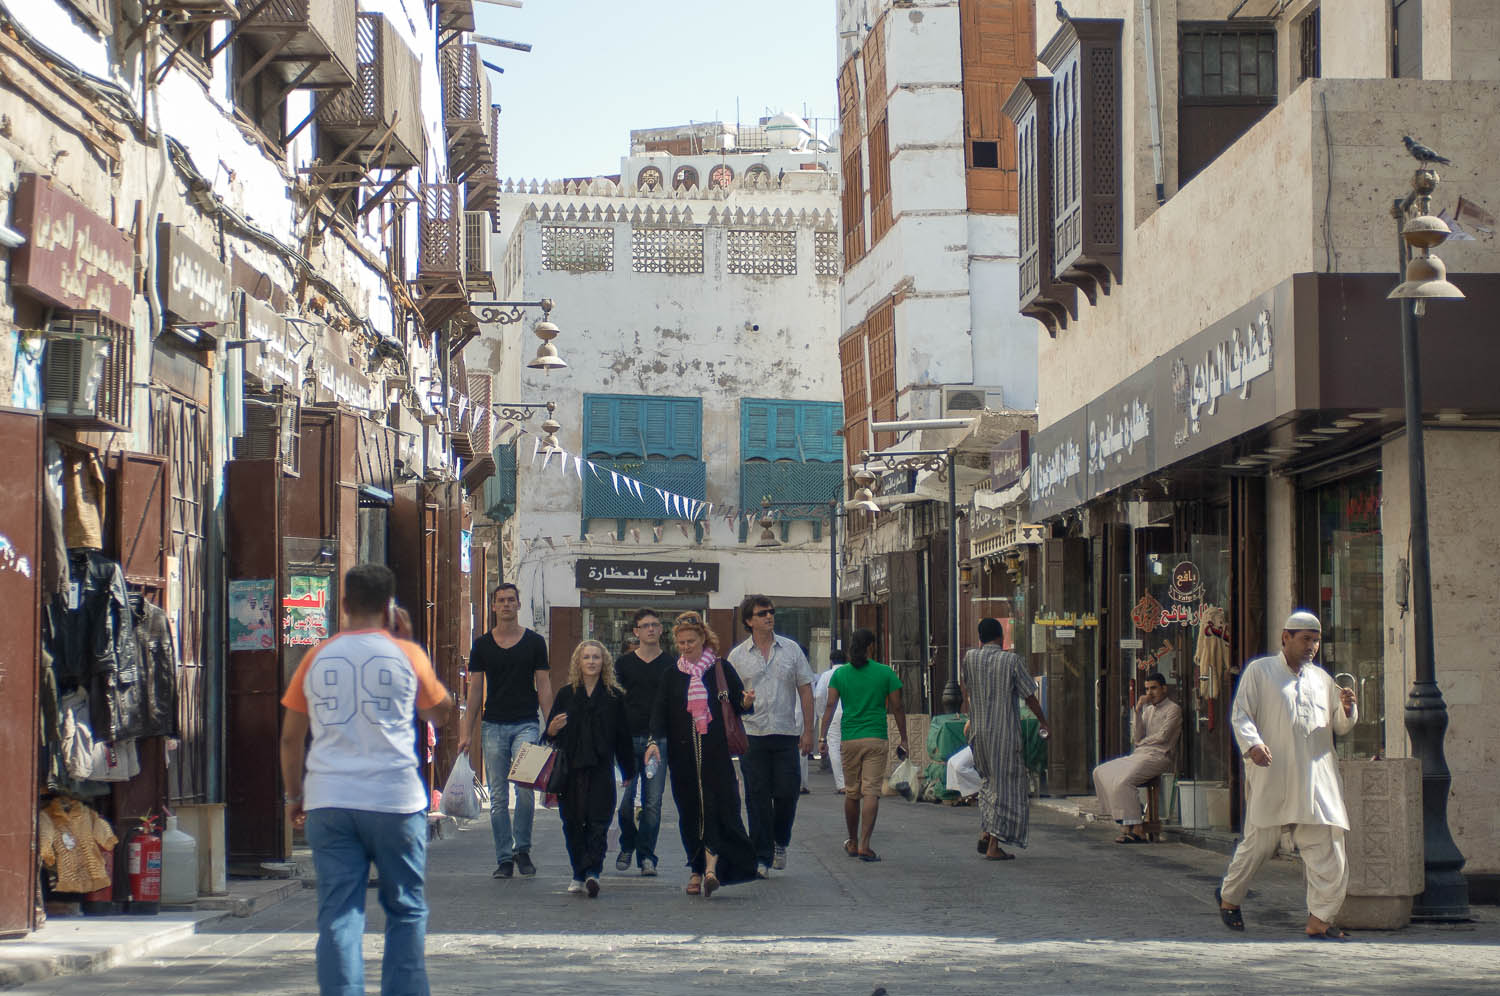 Tourists in Al-Balad, Jeddah's old downtown. Image:  Hansmusa